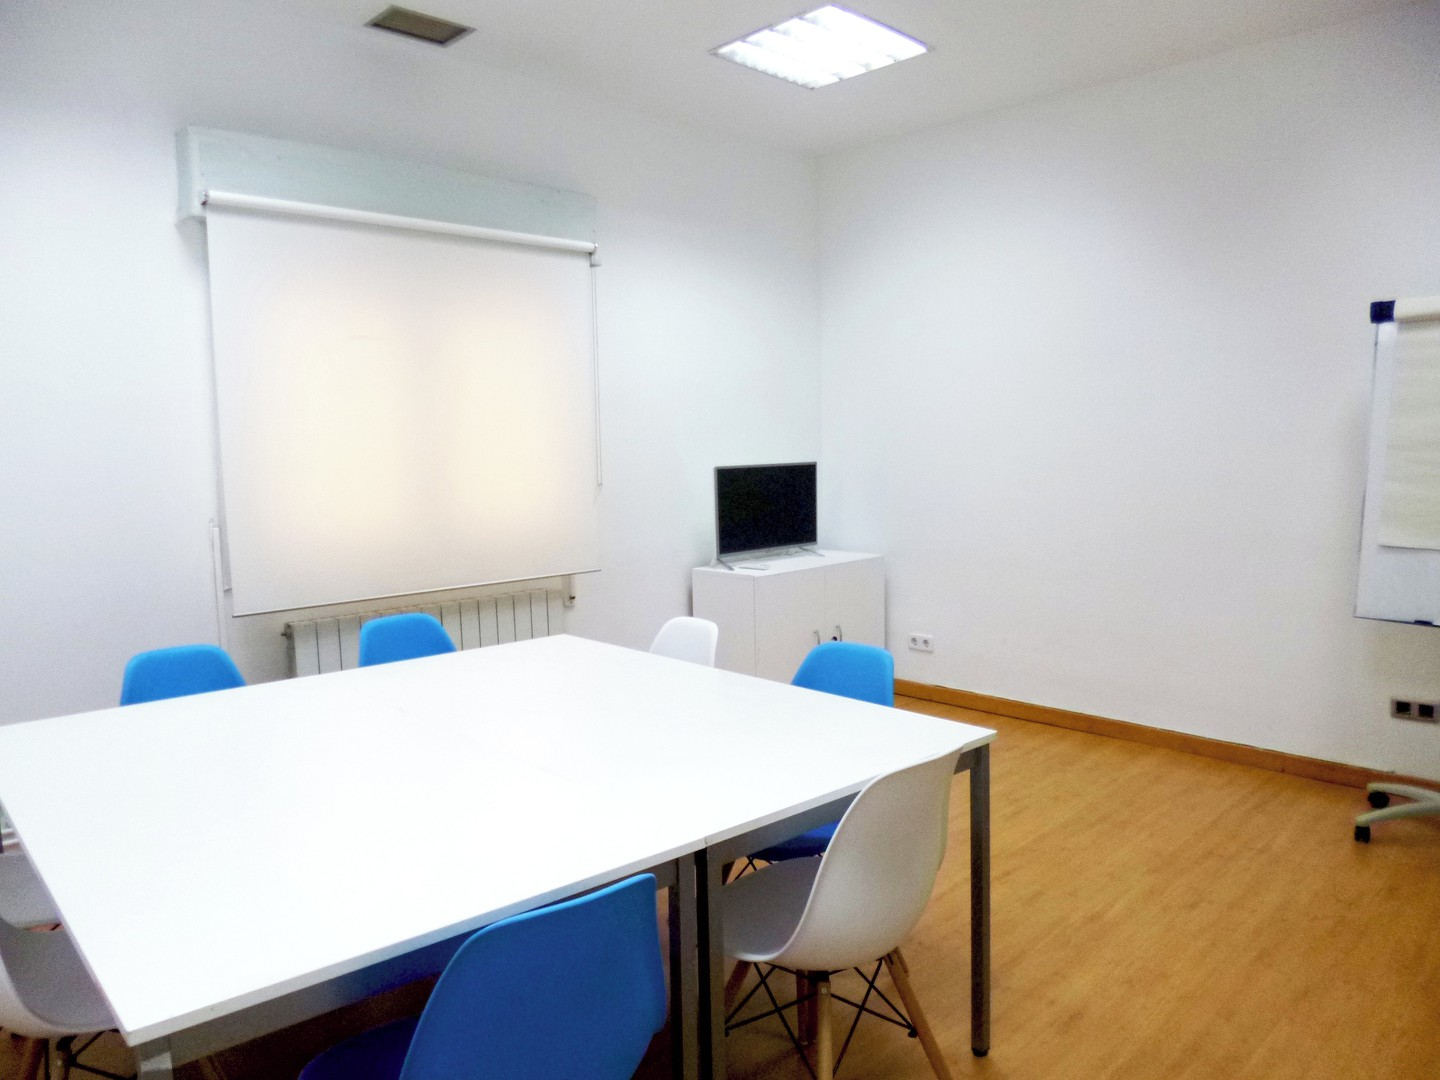 Madrid training rooms Salle de réunion WORK AND WIFI - ROOM1 image 7